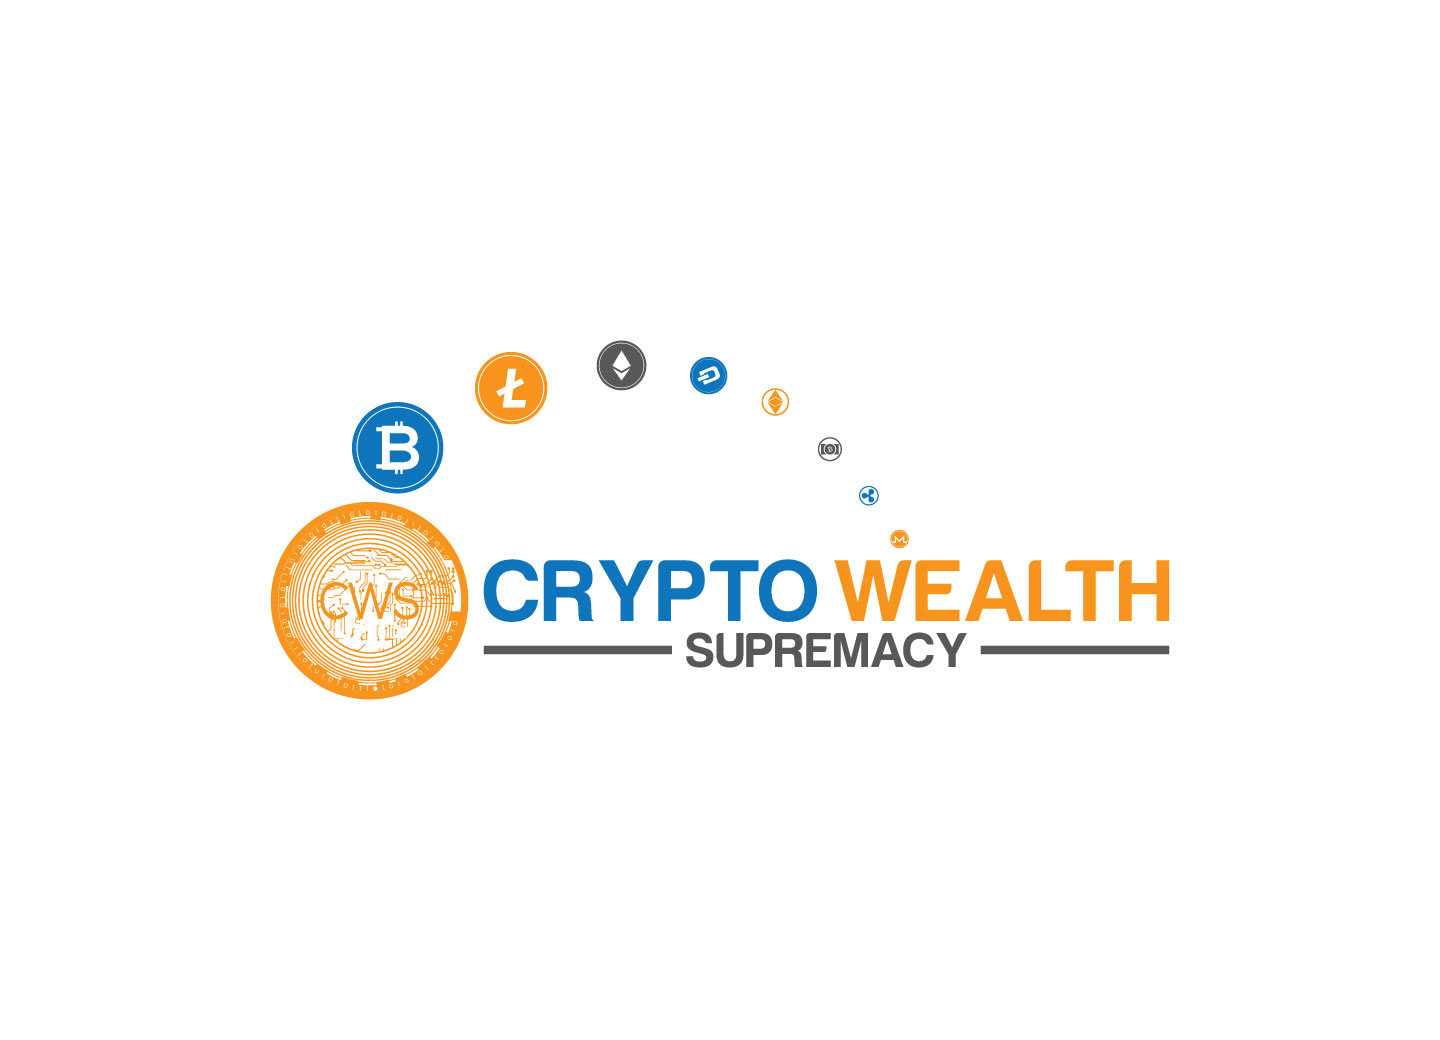 Crypto Wealth Supremacy